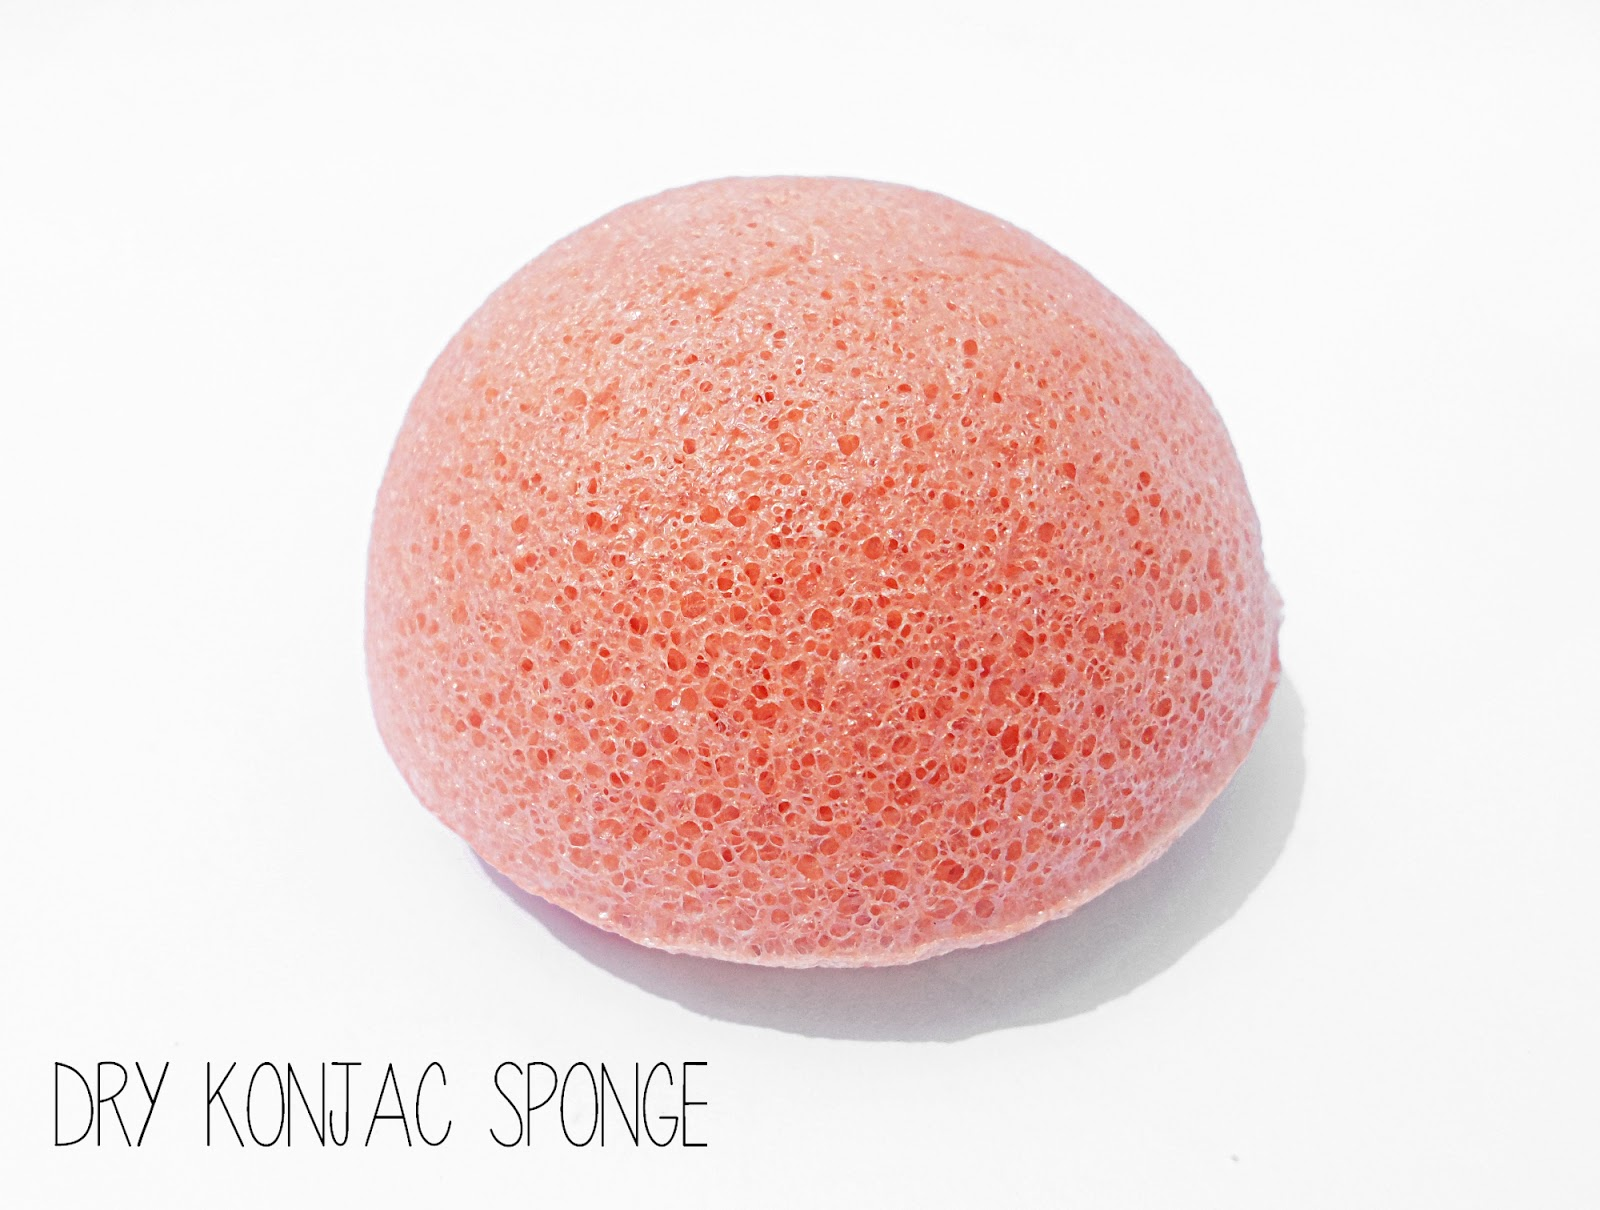 konjac konjak sponge original blogger review pictures wet dry konjac co profucts organic